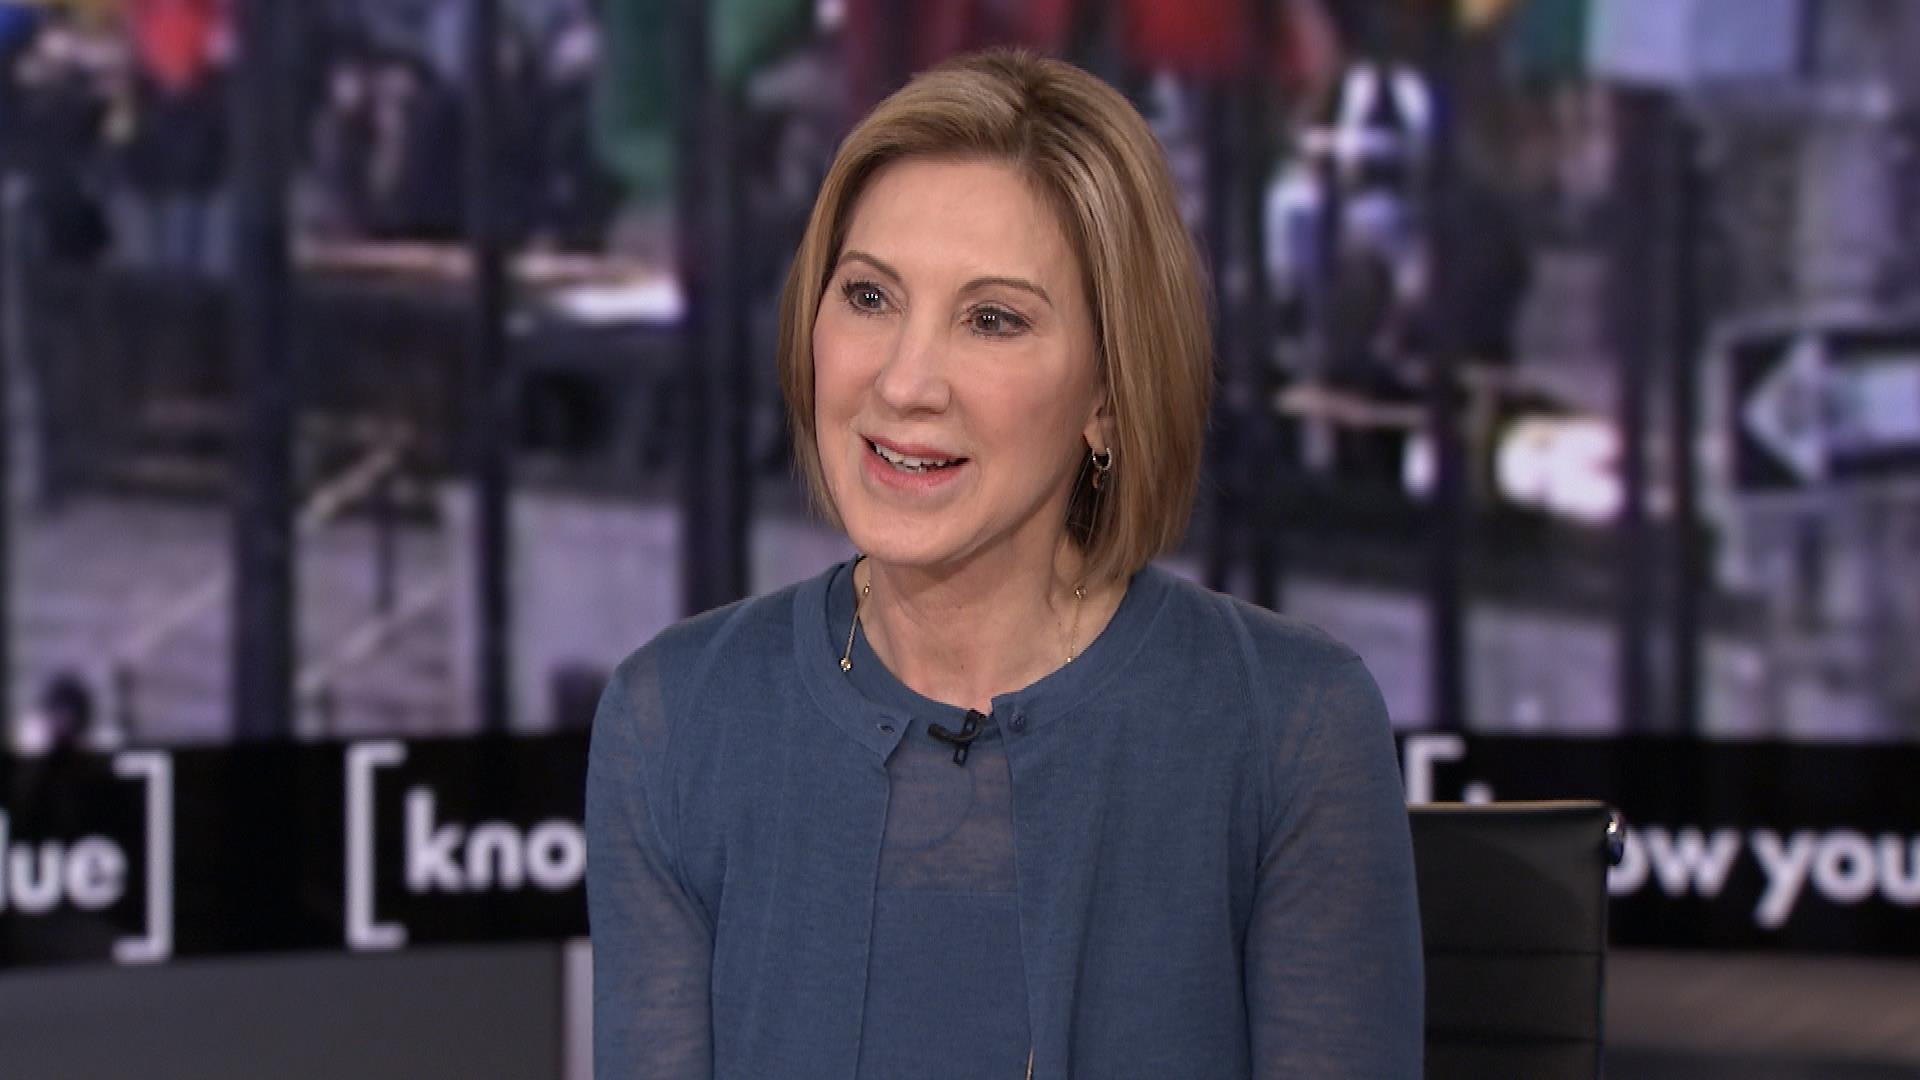 Carly Fiorina: Women can lead by overcoming fear